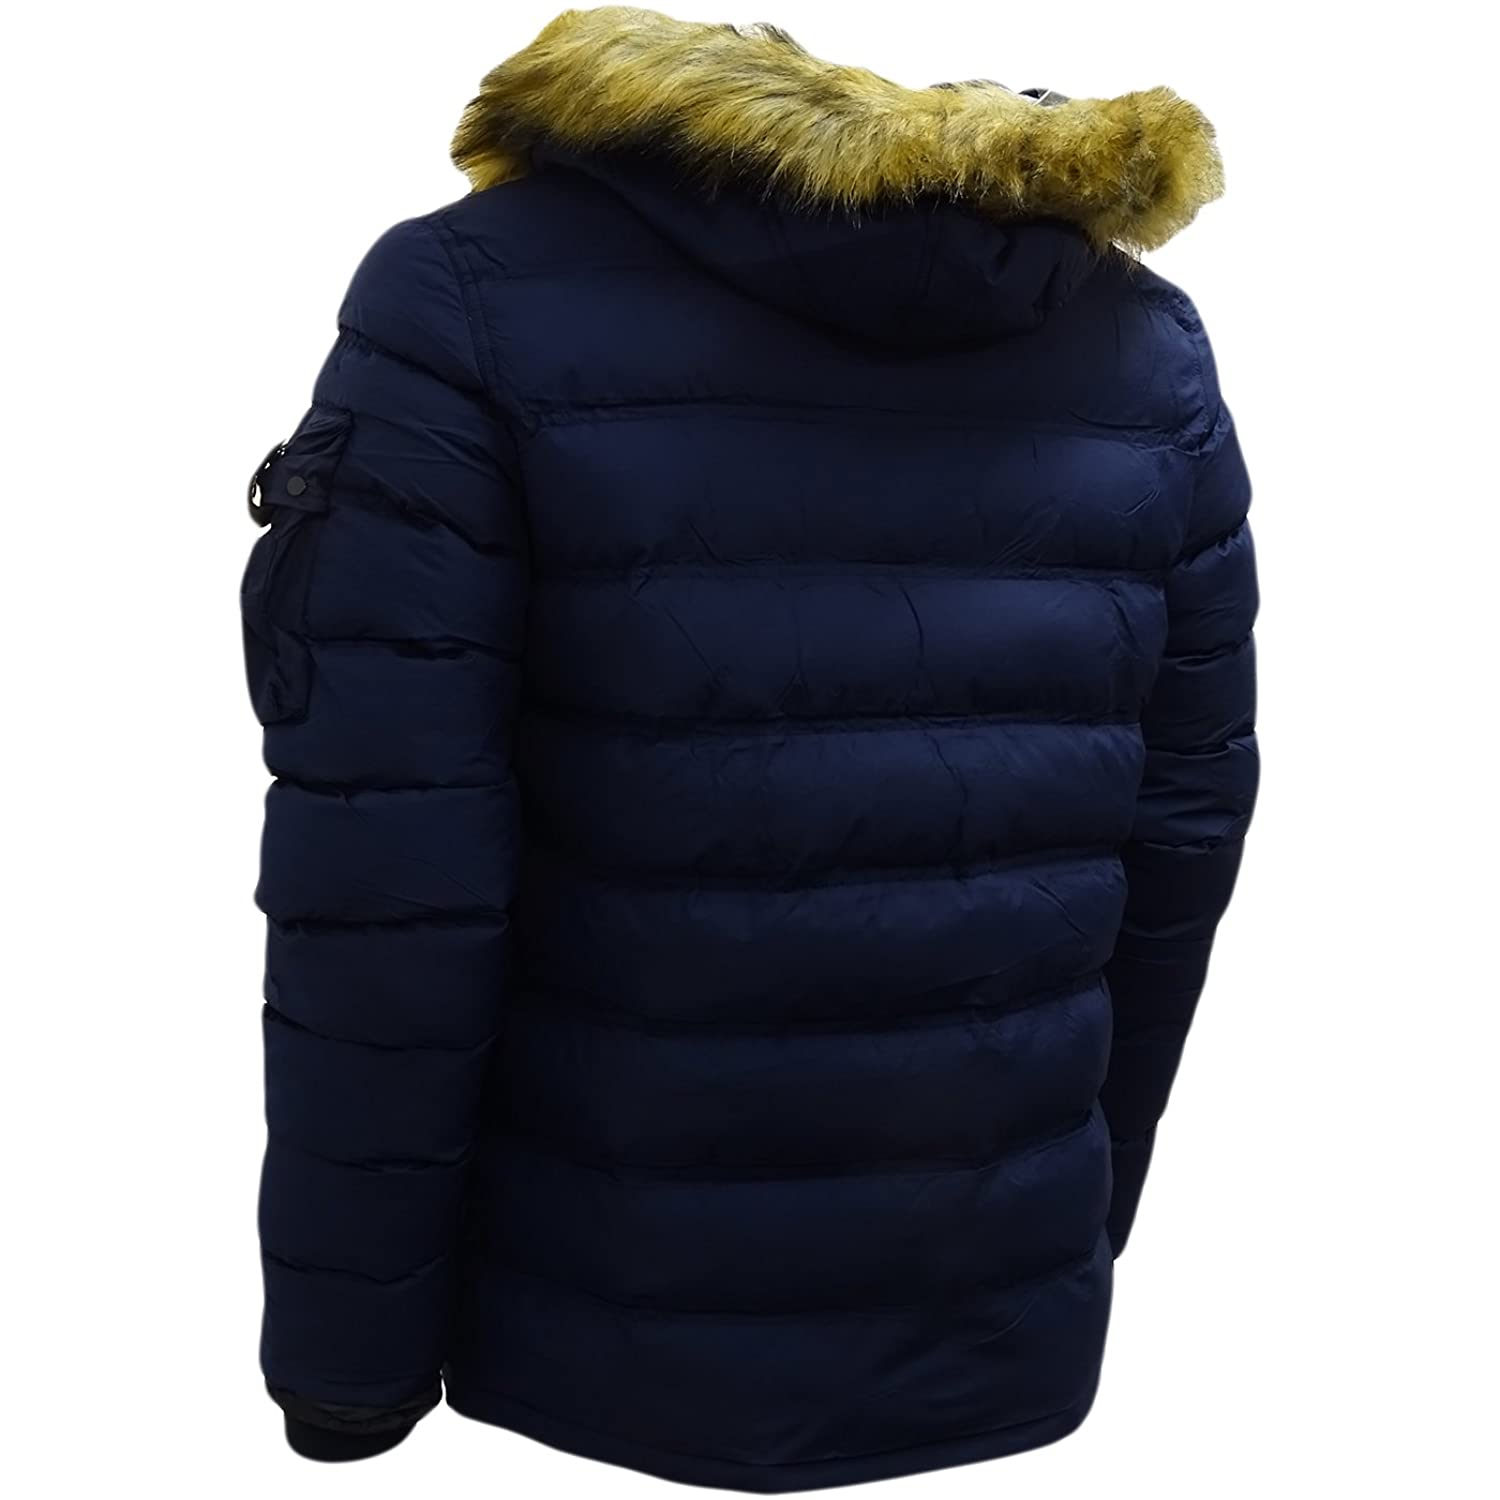 4Bidden Salute Bubble Jacket